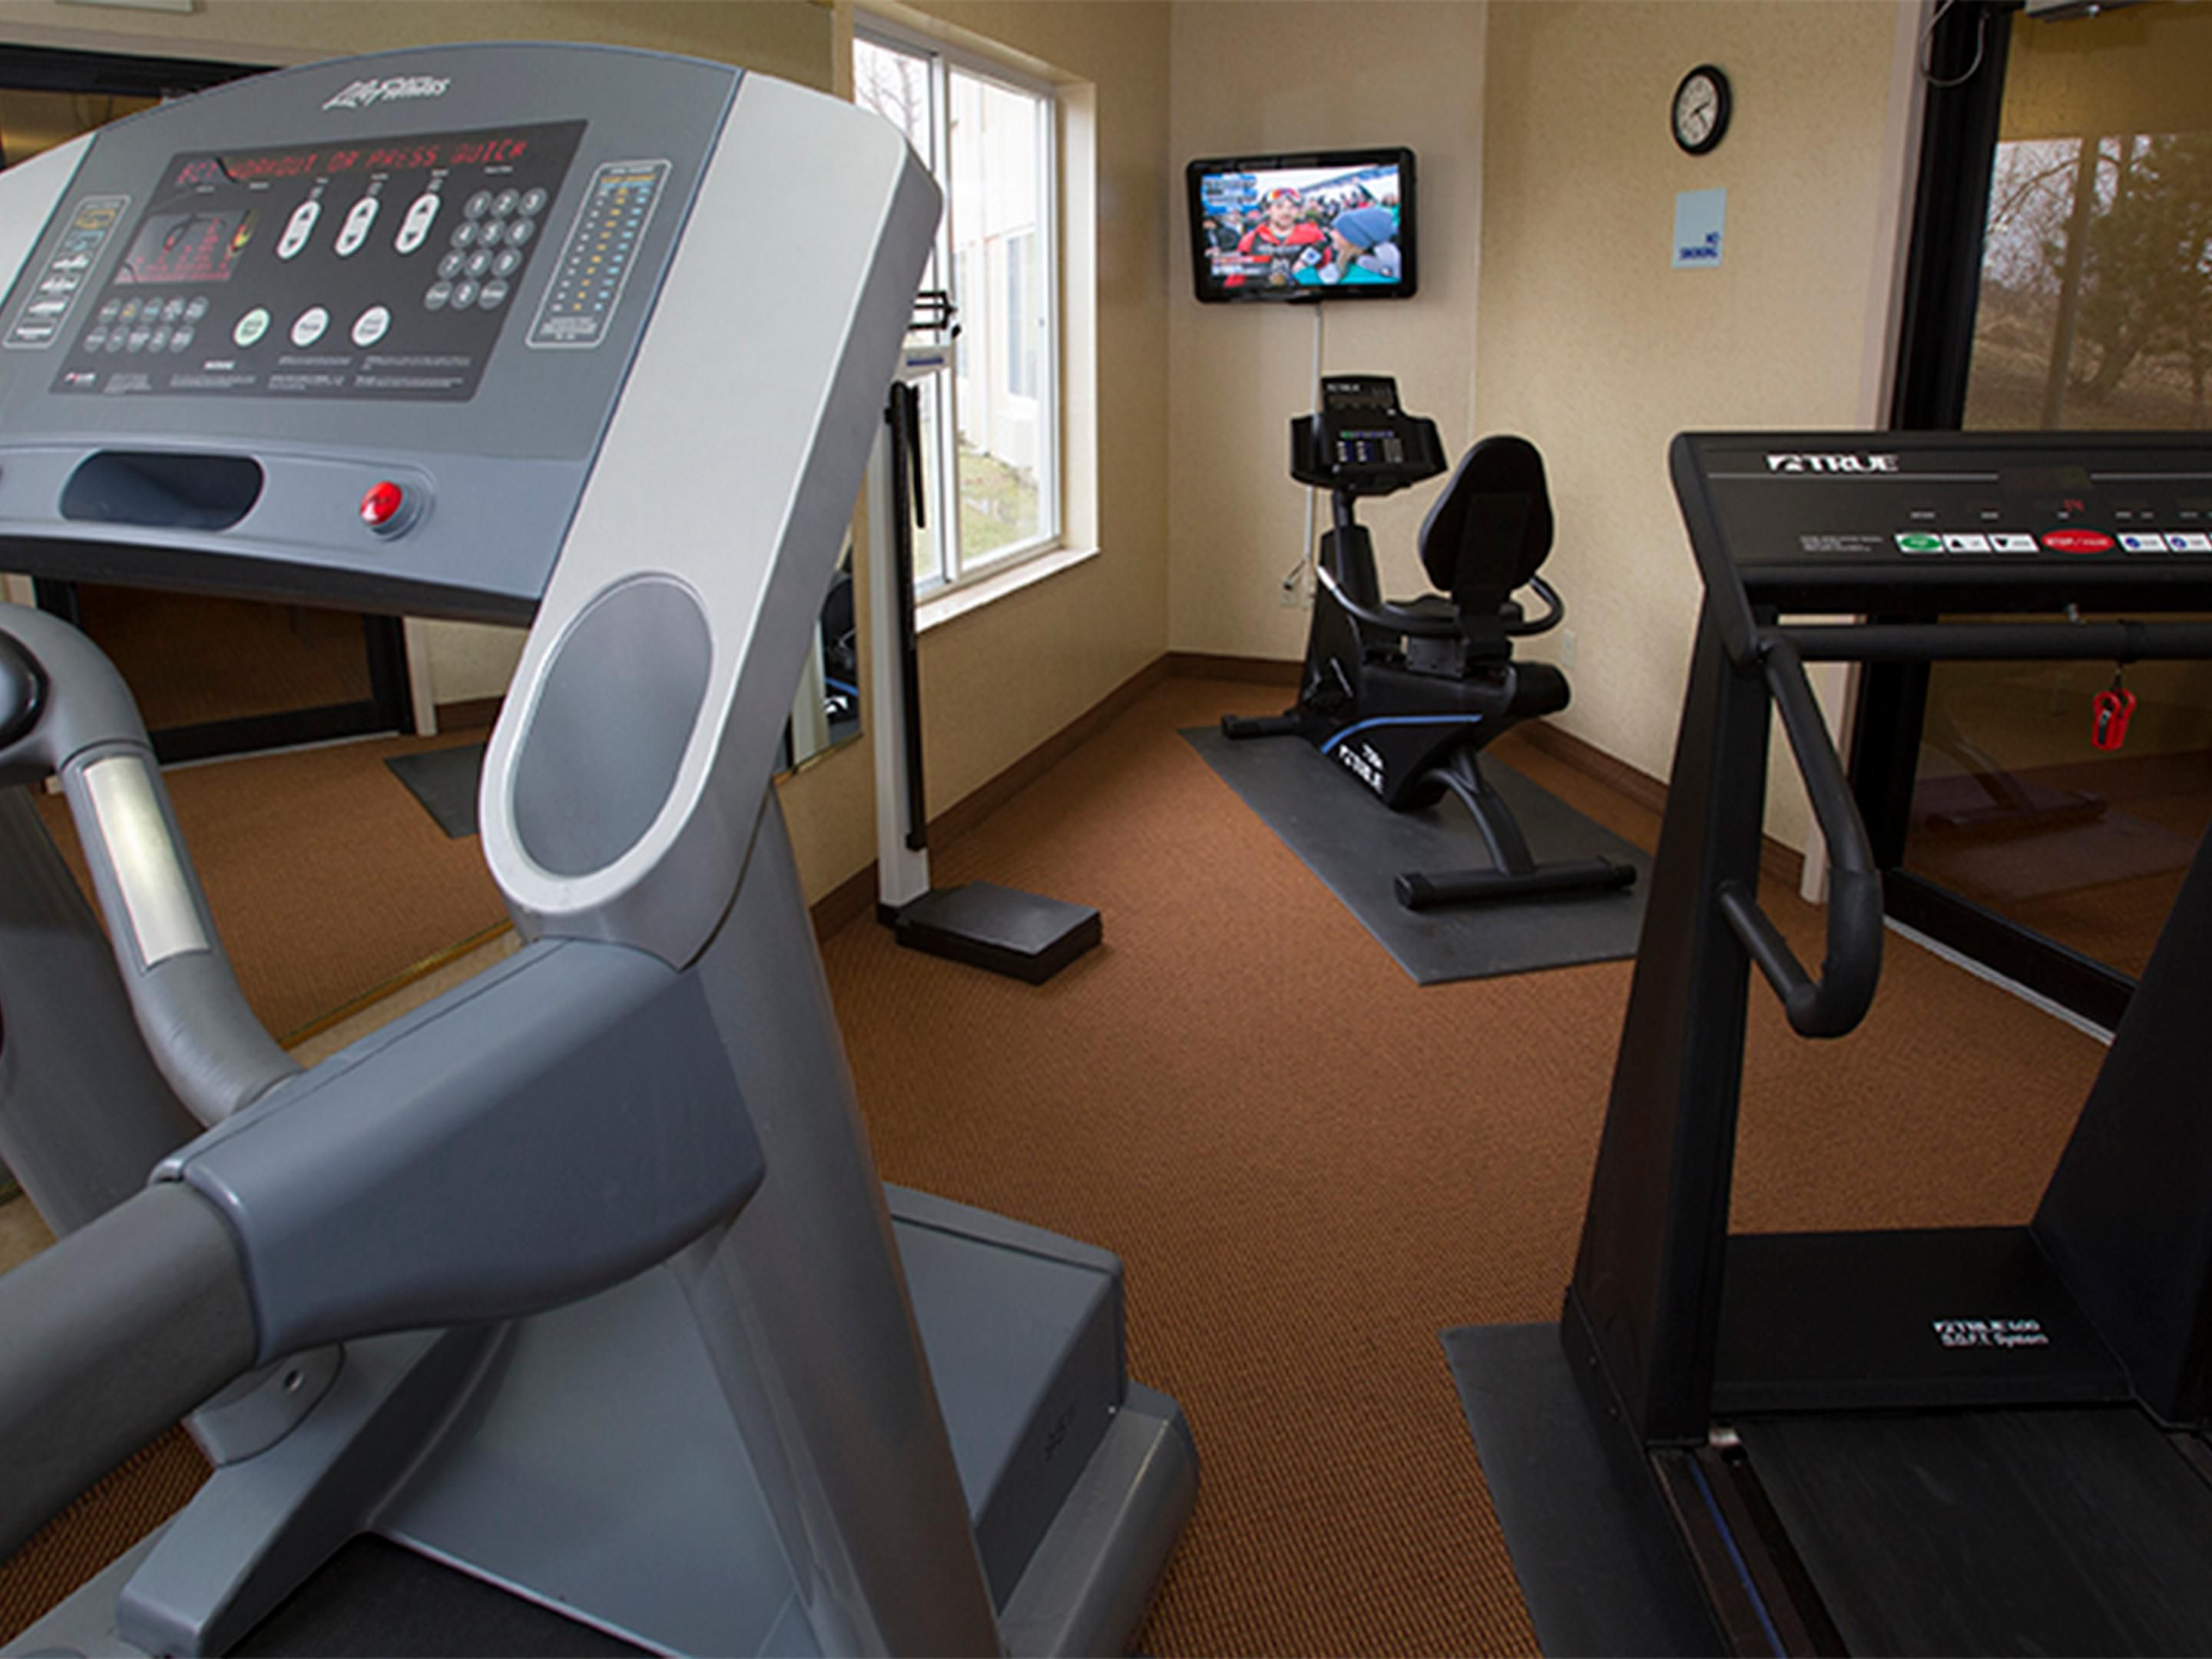 Health Club: Two treadmills and stationary bicycle